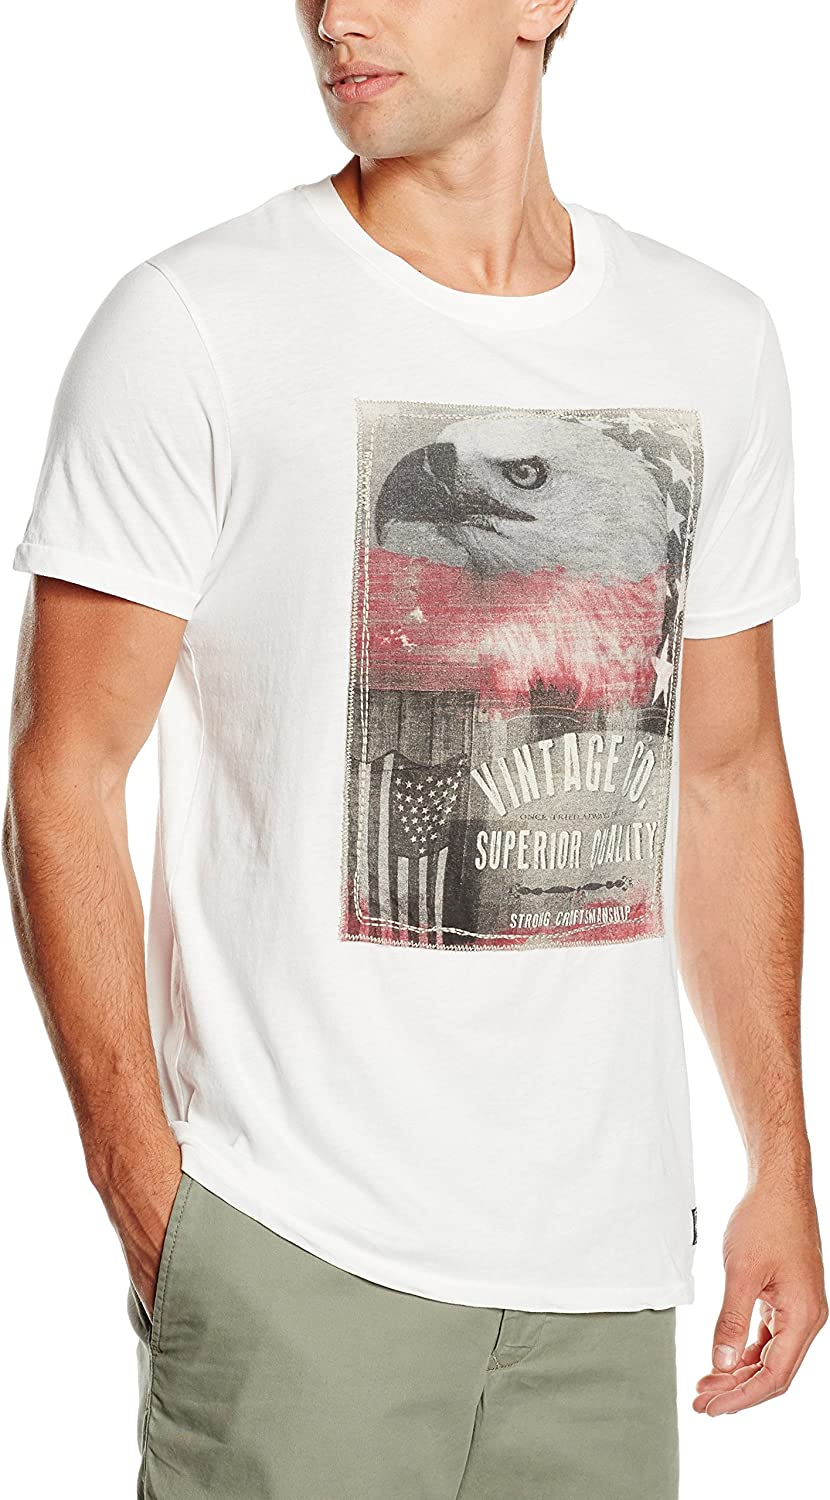 JACK & JONES VINTAGE JJVBEN SS TEE CREW NECK - Camiseta Hombre, Blanco (Cloud Dancer Fit:T&S), Small: Amazon.es: Ropa y accesorios